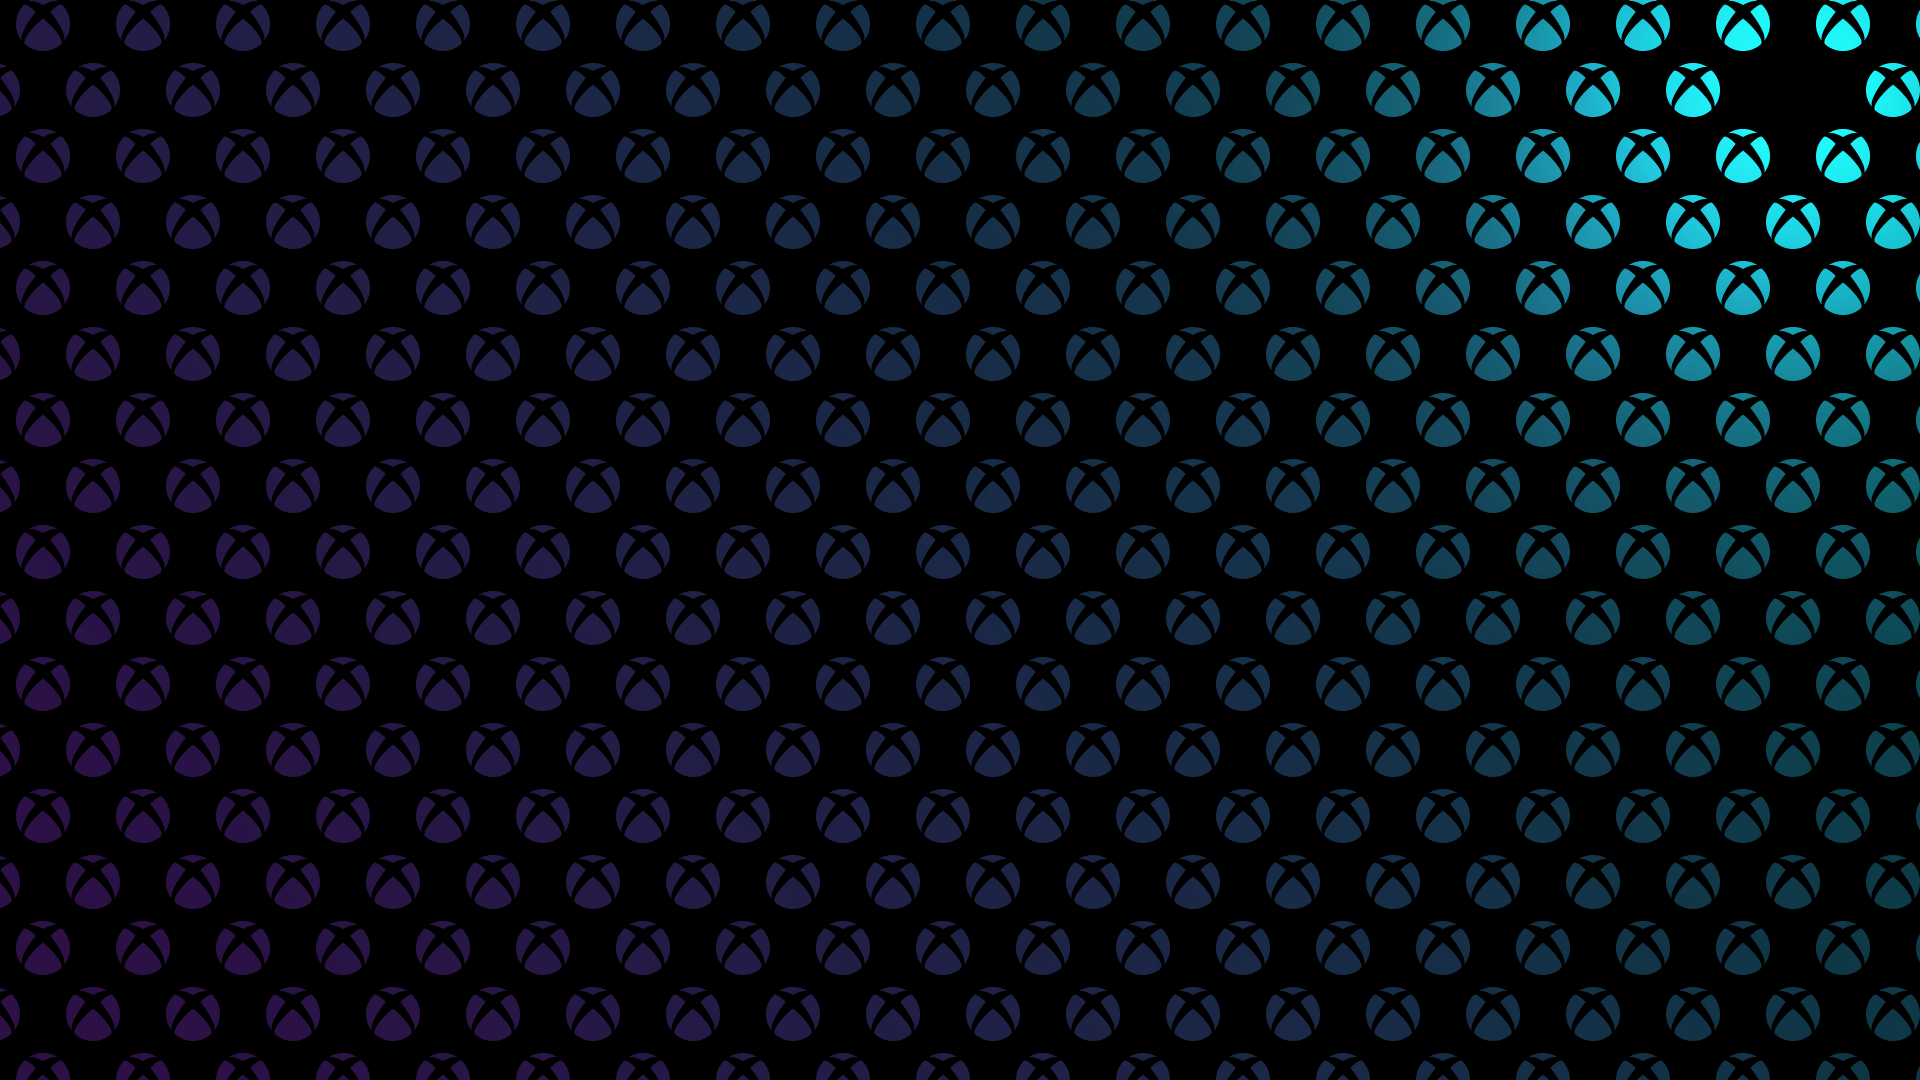 Xbox Background 85 images in Collection Page 3 1920x1080